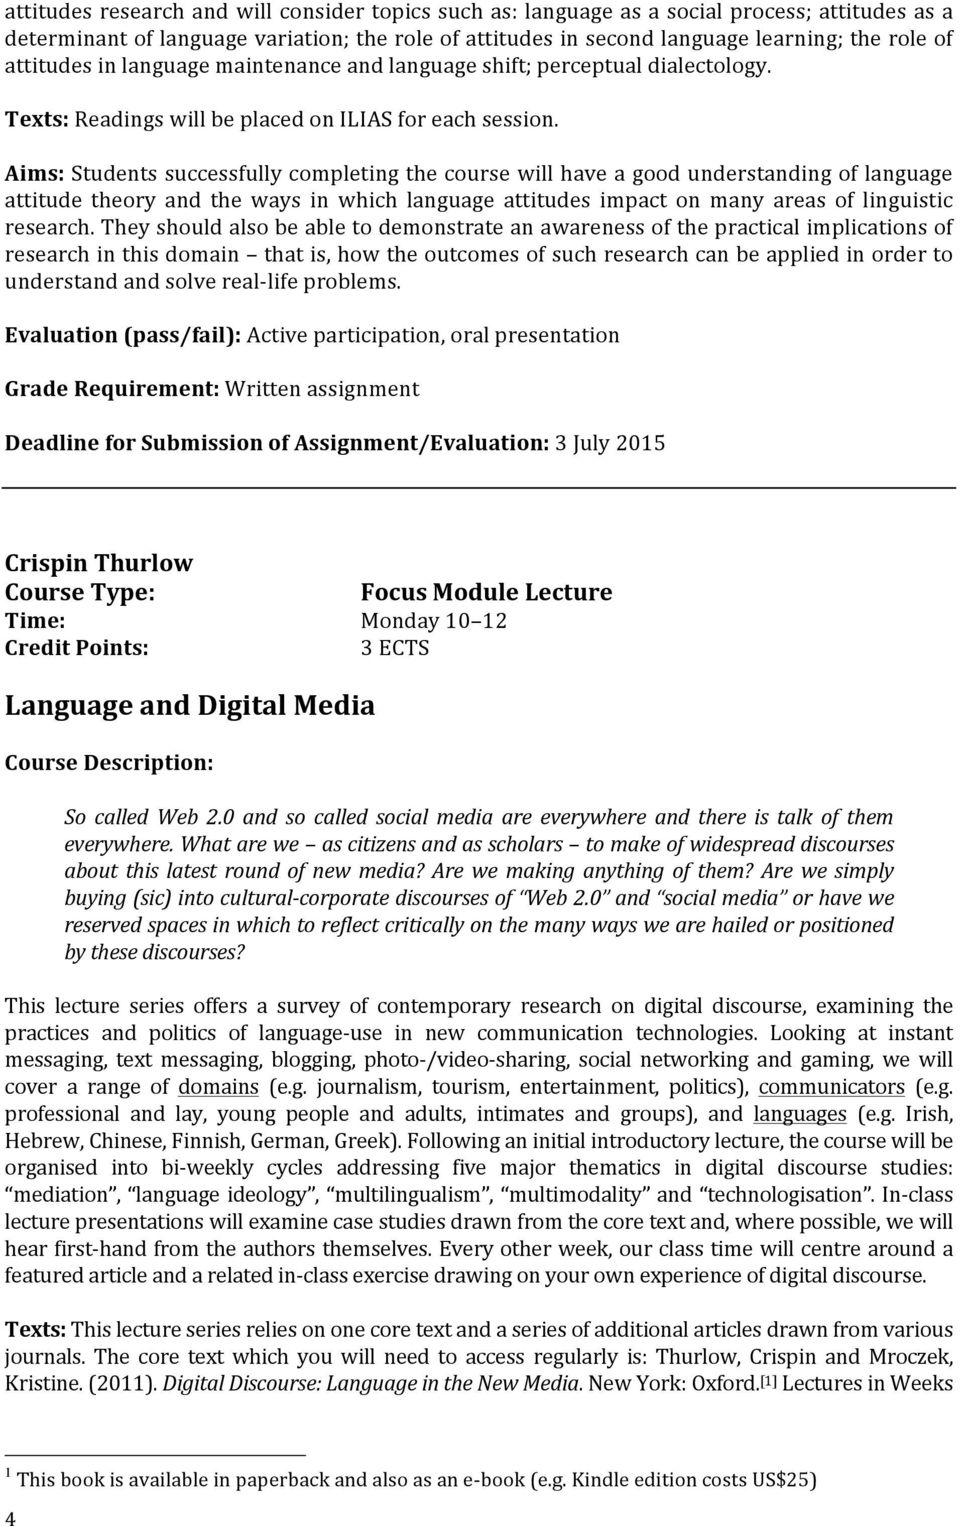 Aims: Students successfully completing the course will have a good understanding of language attitude theory and the ways in which language attitudes impact on many areas of linguistic research.